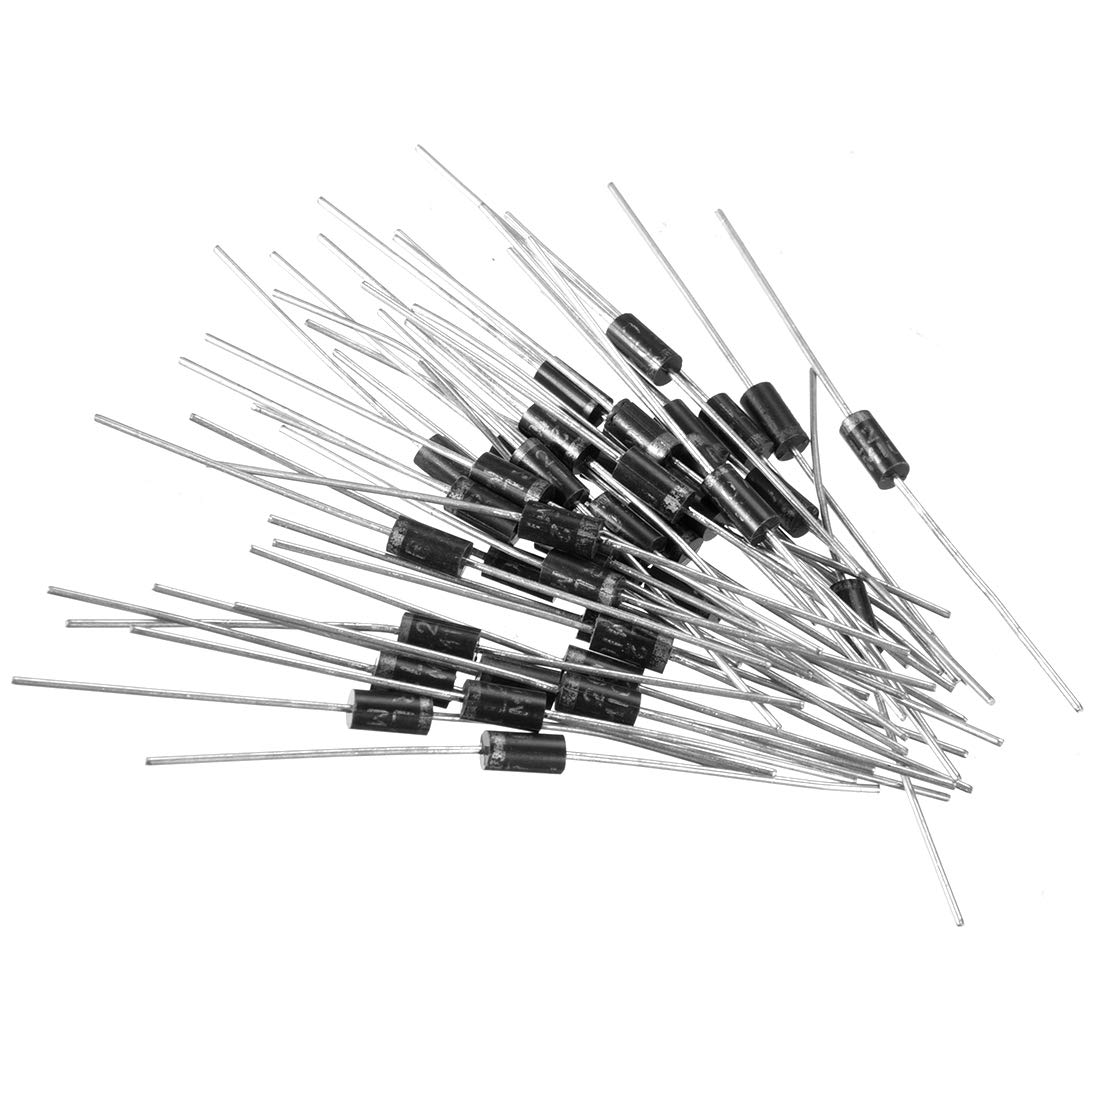 uxcell Schottky Rectifier Diode 3A 1000V Axial Electronic Silicon Diodes 30pcs for 1N5408